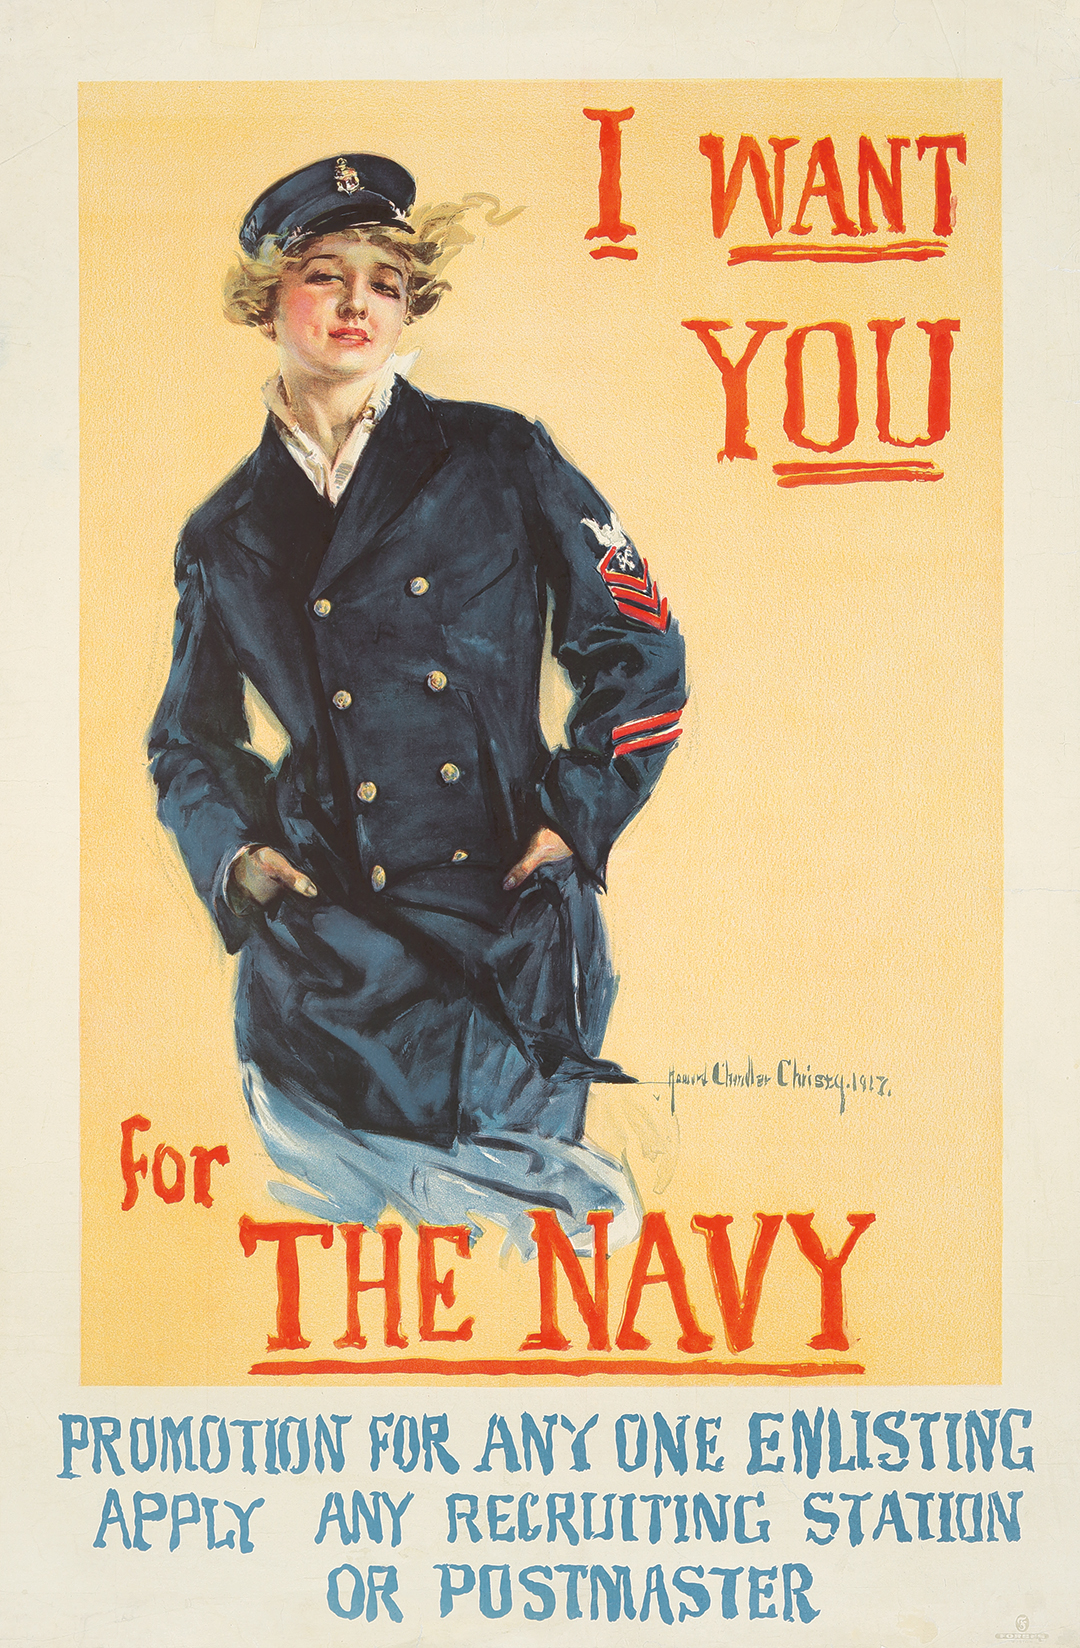 85. I Want You For the Navy. 1917.